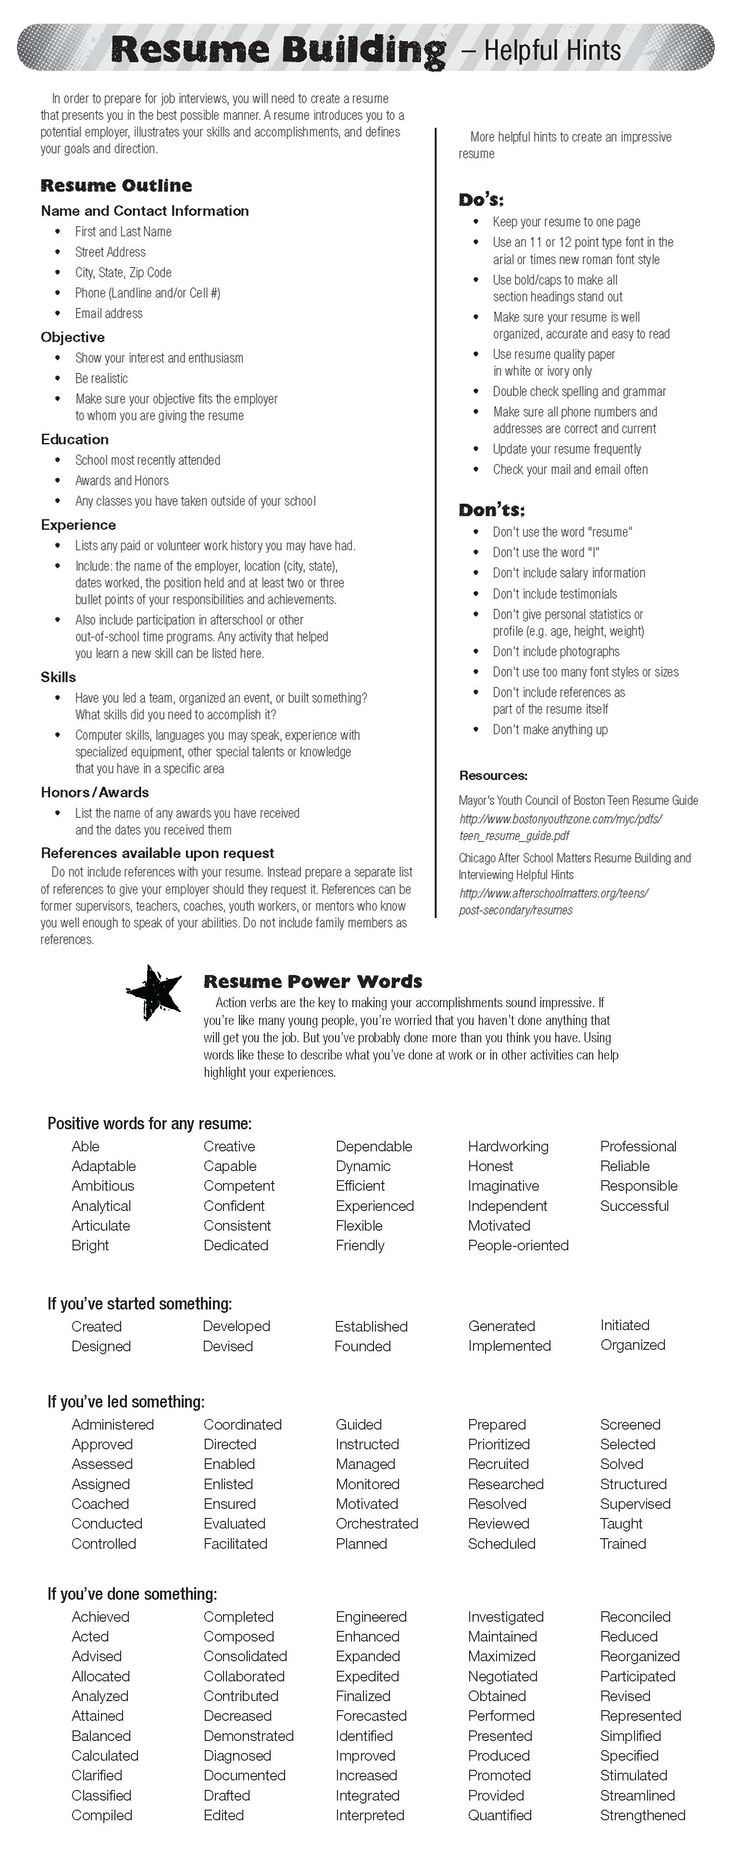 Opposenewapstandardsus  Unique  Ideas About Resume On Pinterest  Cv Format Resume Cv And  With Handsome  Ideas About Resume On Pinterest  Cv Format Resume Cv And Resume Templates With Charming What Is The Best Resume Format Also Follow Up Email After Submitting Resume In Addition Probation Officer Resume And Resume Skill As Well As Examples Of Sales Resumes Additionally Best Words For Resume From Pinterestcom With Opposenewapstandardsus  Handsome  Ideas About Resume On Pinterest  Cv Format Resume Cv And  With Charming  Ideas About Resume On Pinterest  Cv Format Resume Cv And Resume Templates And Unique What Is The Best Resume Format Also Follow Up Email After Submitting Resume In Addition Probation Officer Resume From Pinterestcom